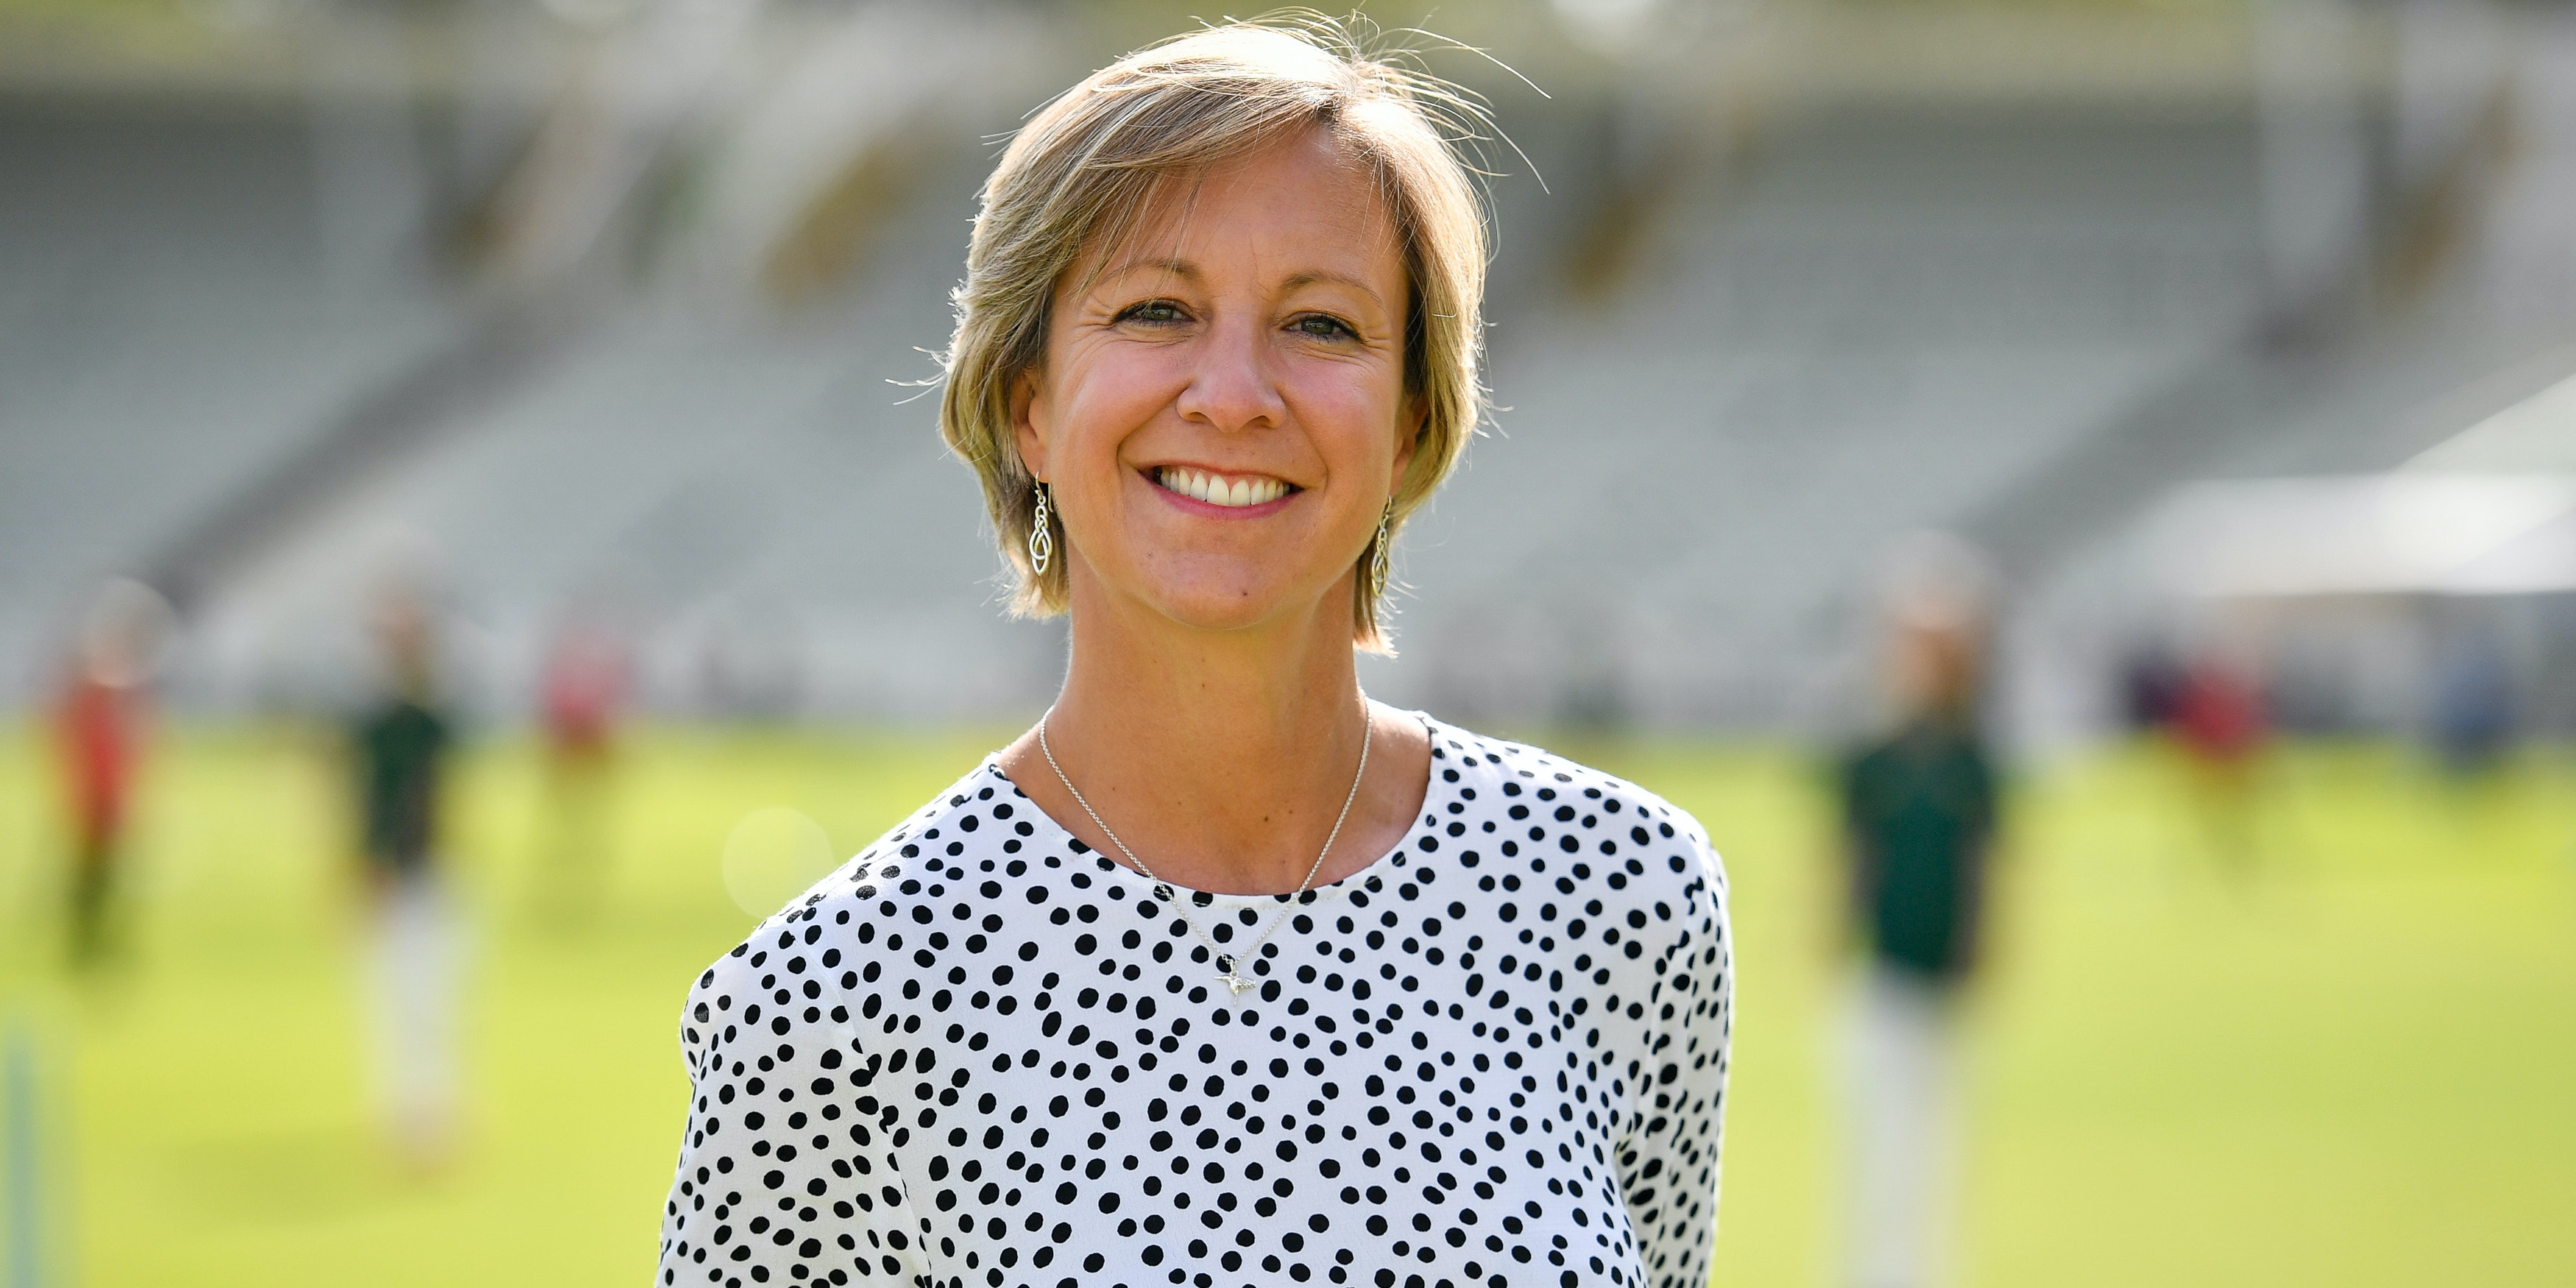 Clare Connor: 41 professional contracts is step change for women's cricket